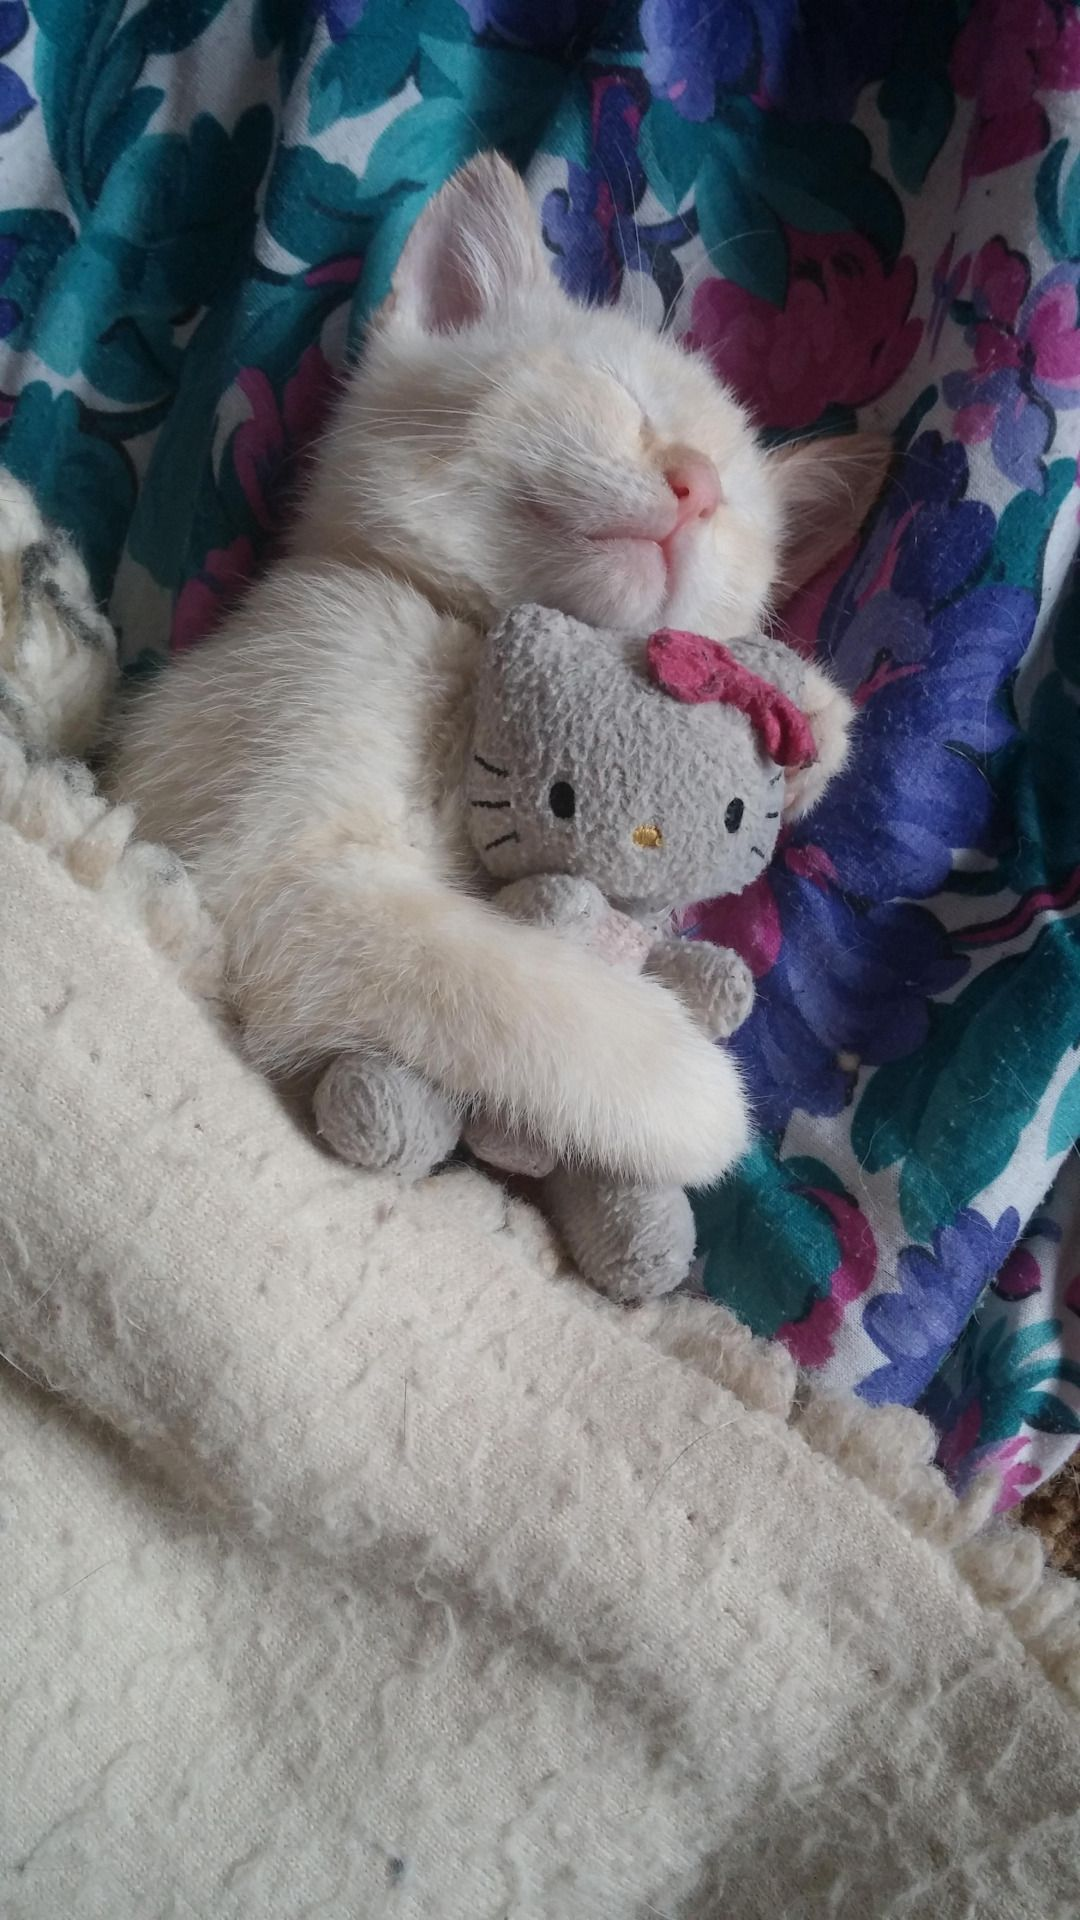 Cutekittensarefun 2 Yrs Later And He Still Sleeps With His Toys Kittens Cutest Cute Cats Cute Cats And Kittens